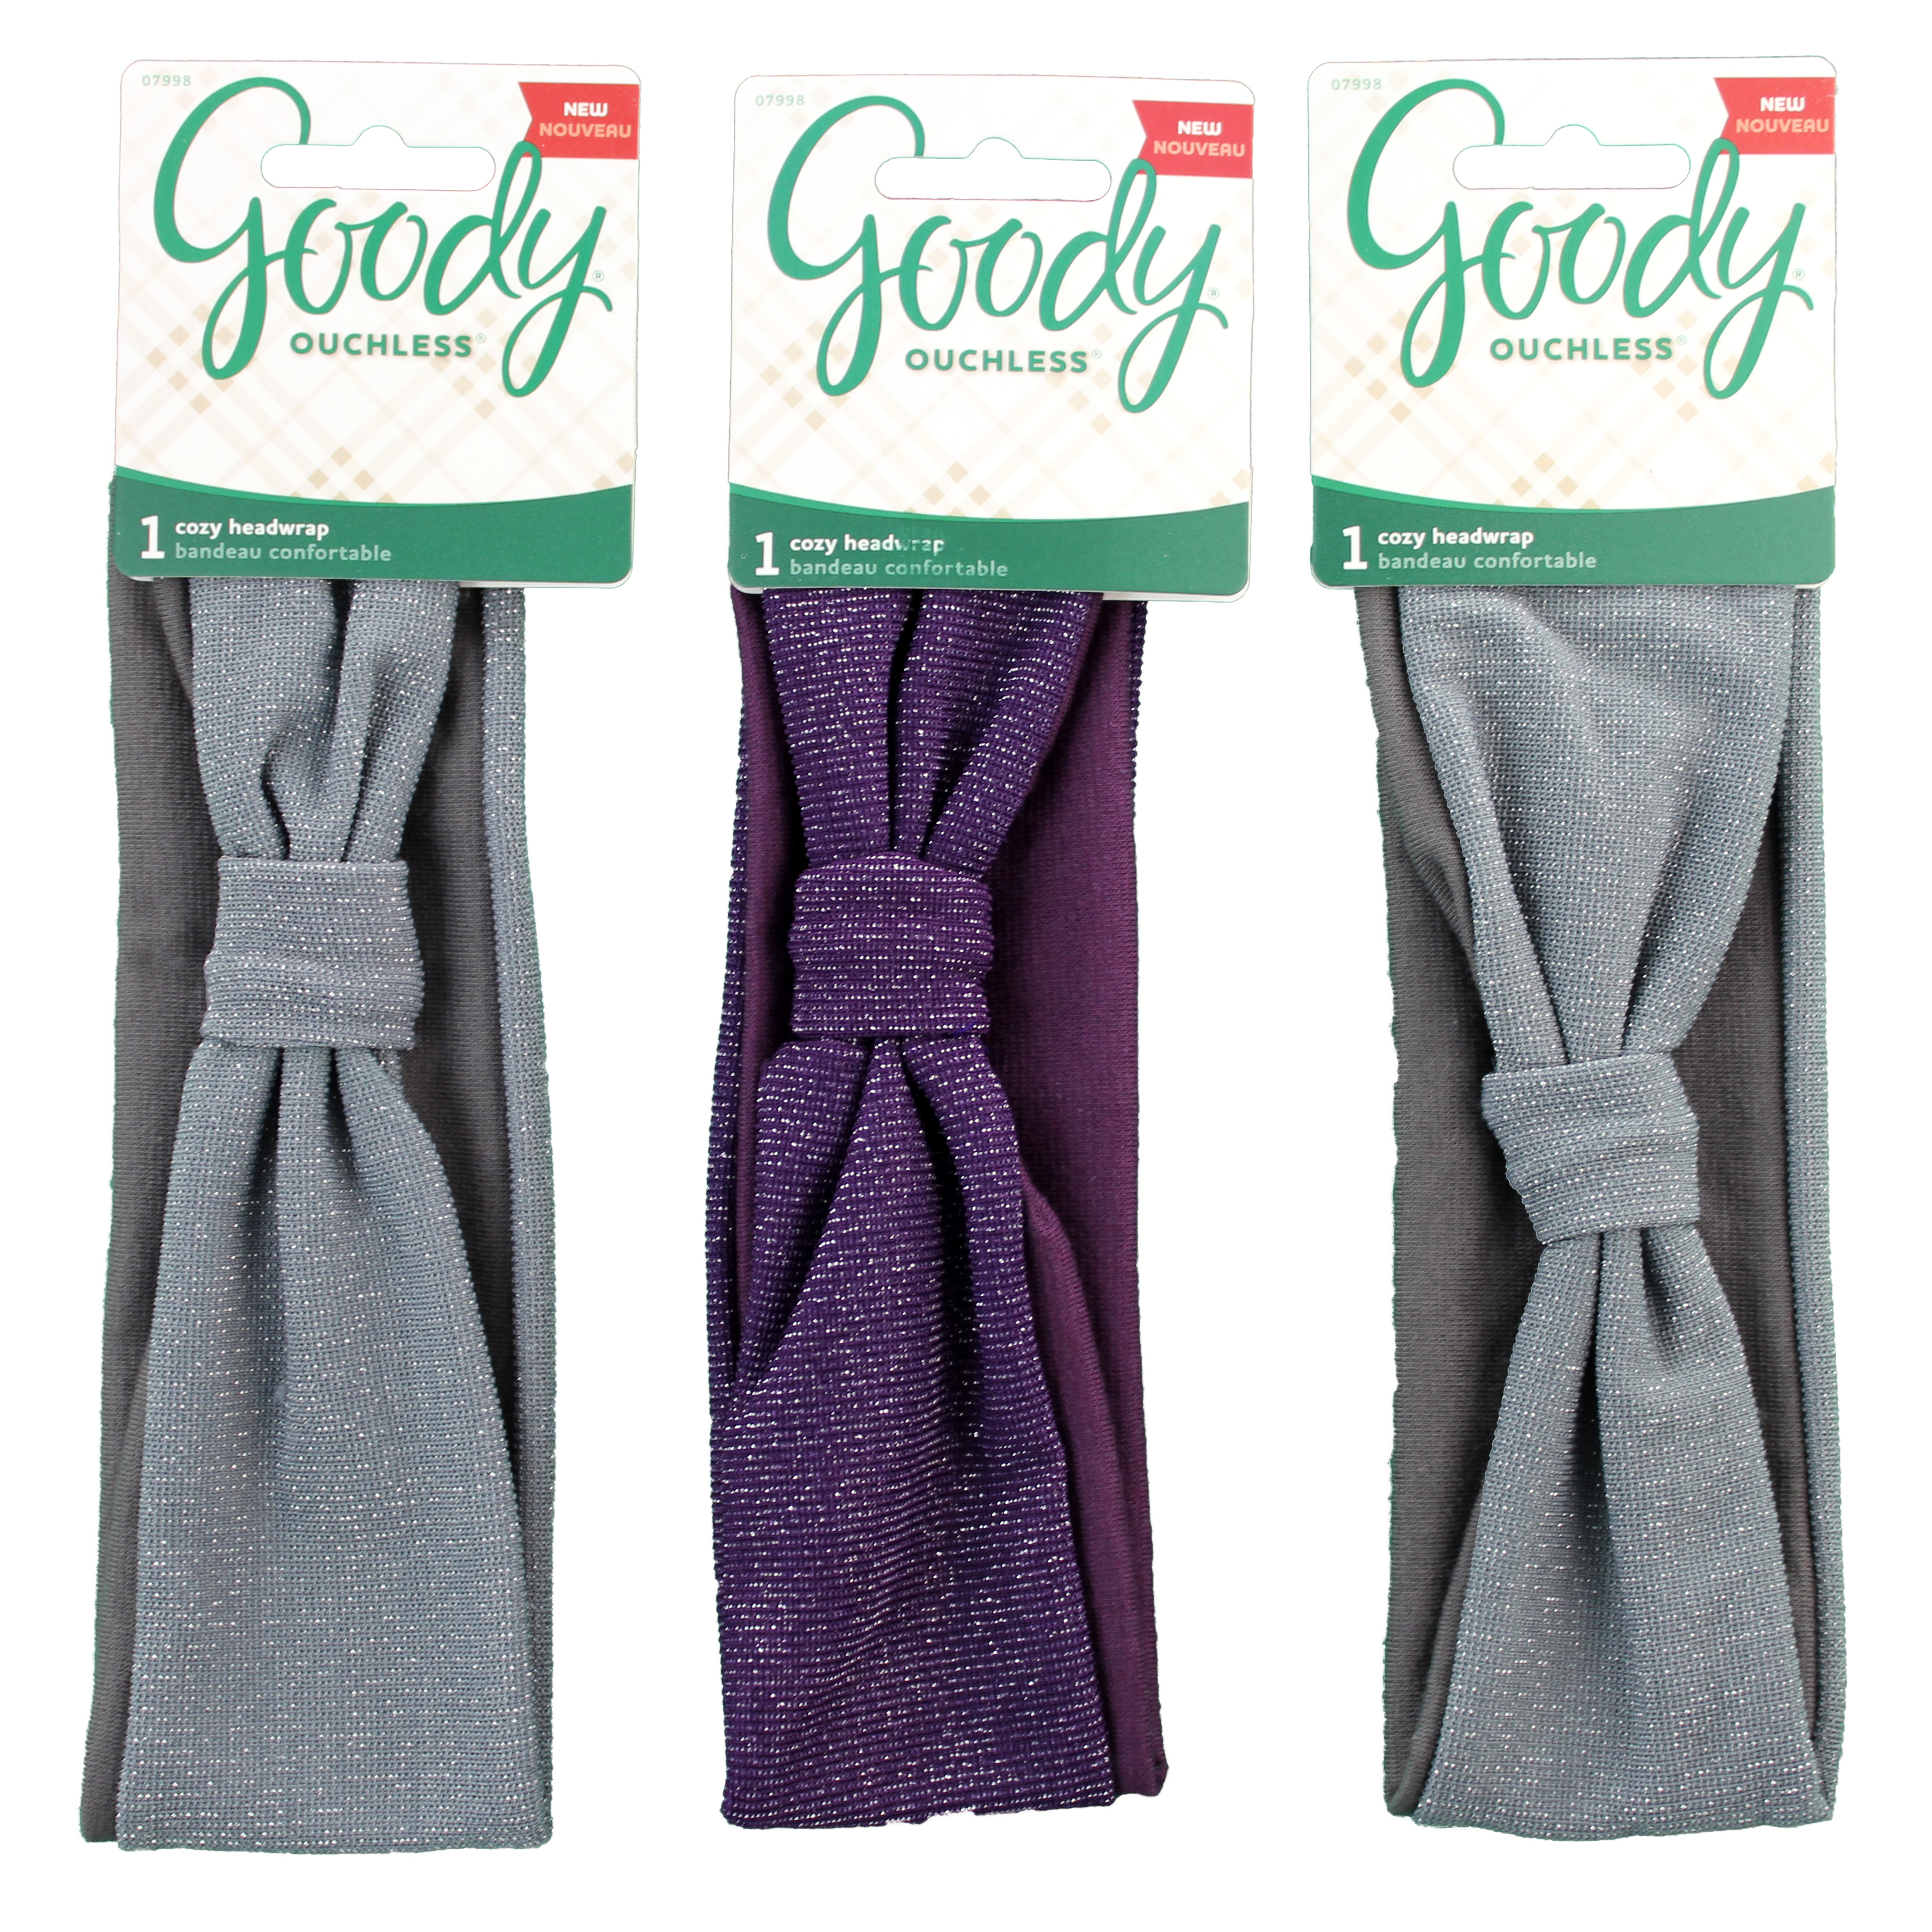 Goody Ouchless Headwrap Cozy Cabin, 1 CT